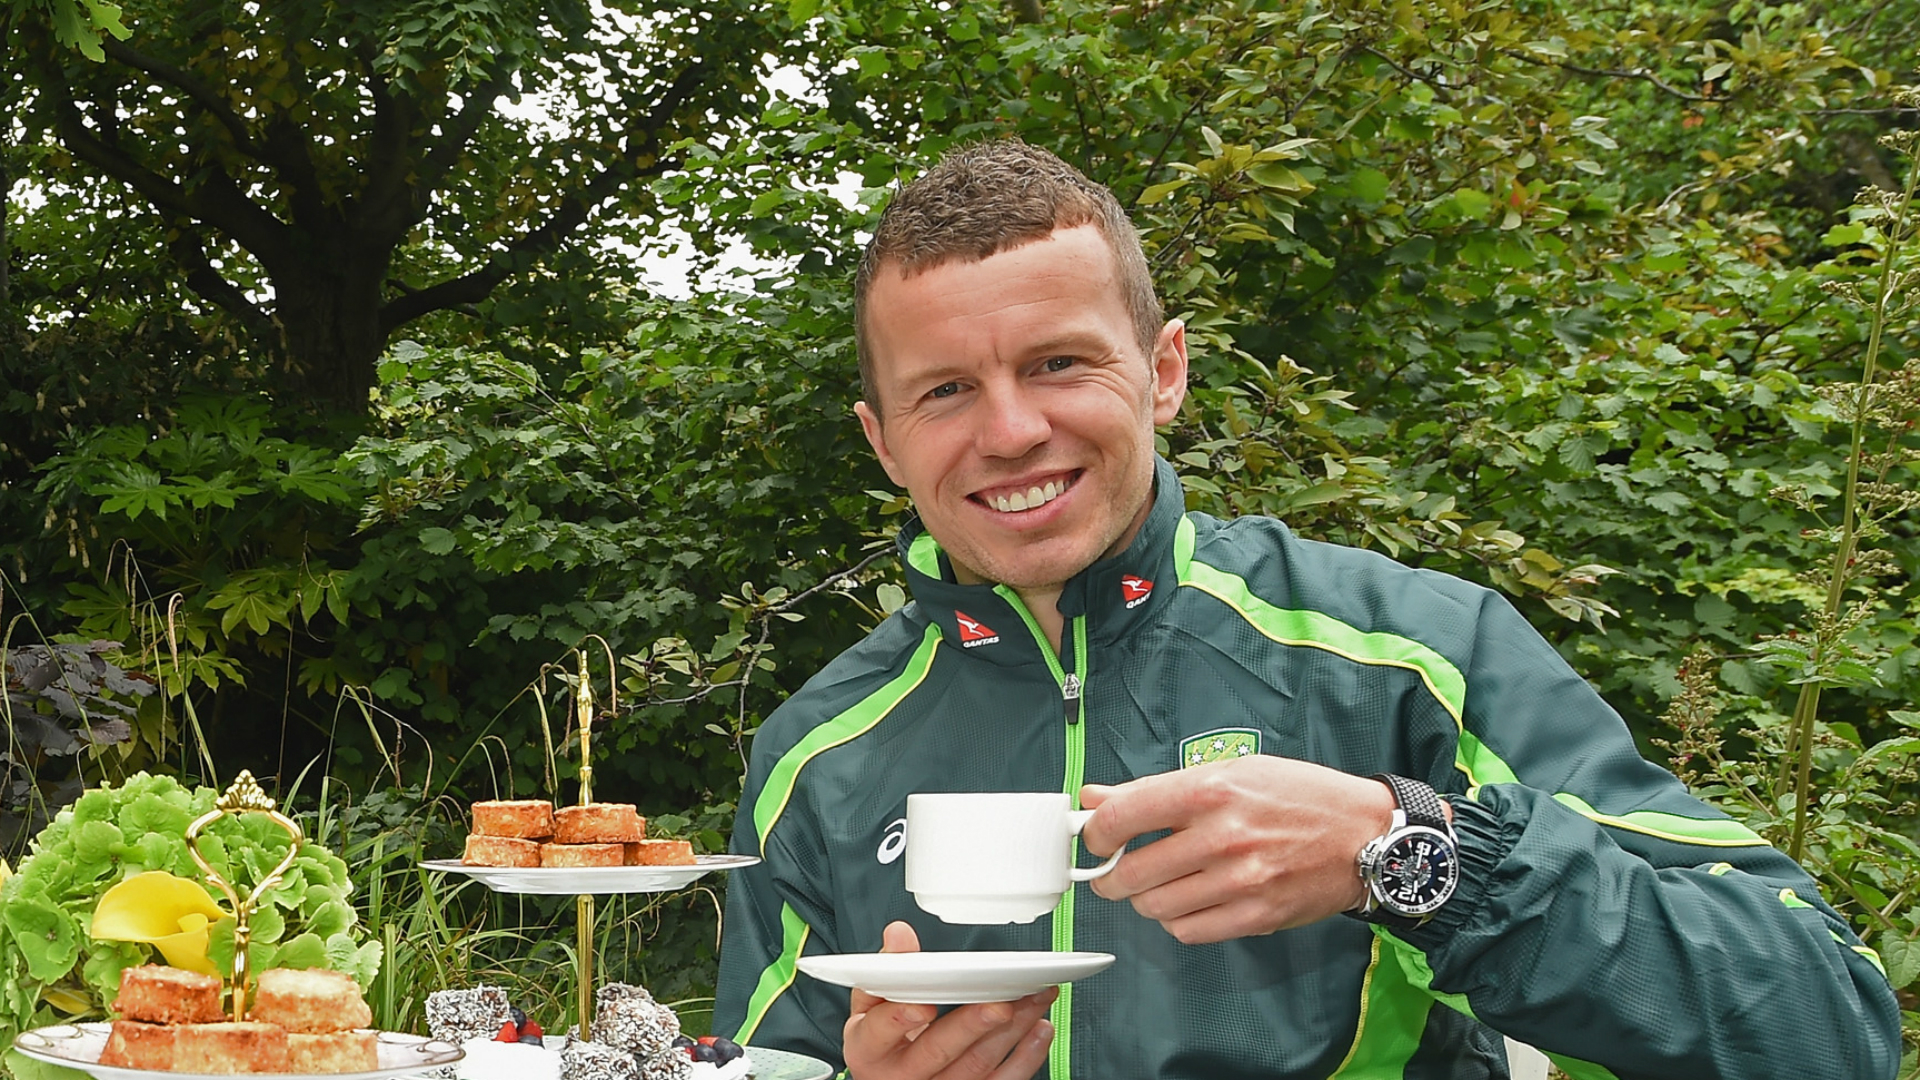 PeterSiddle - Cropped